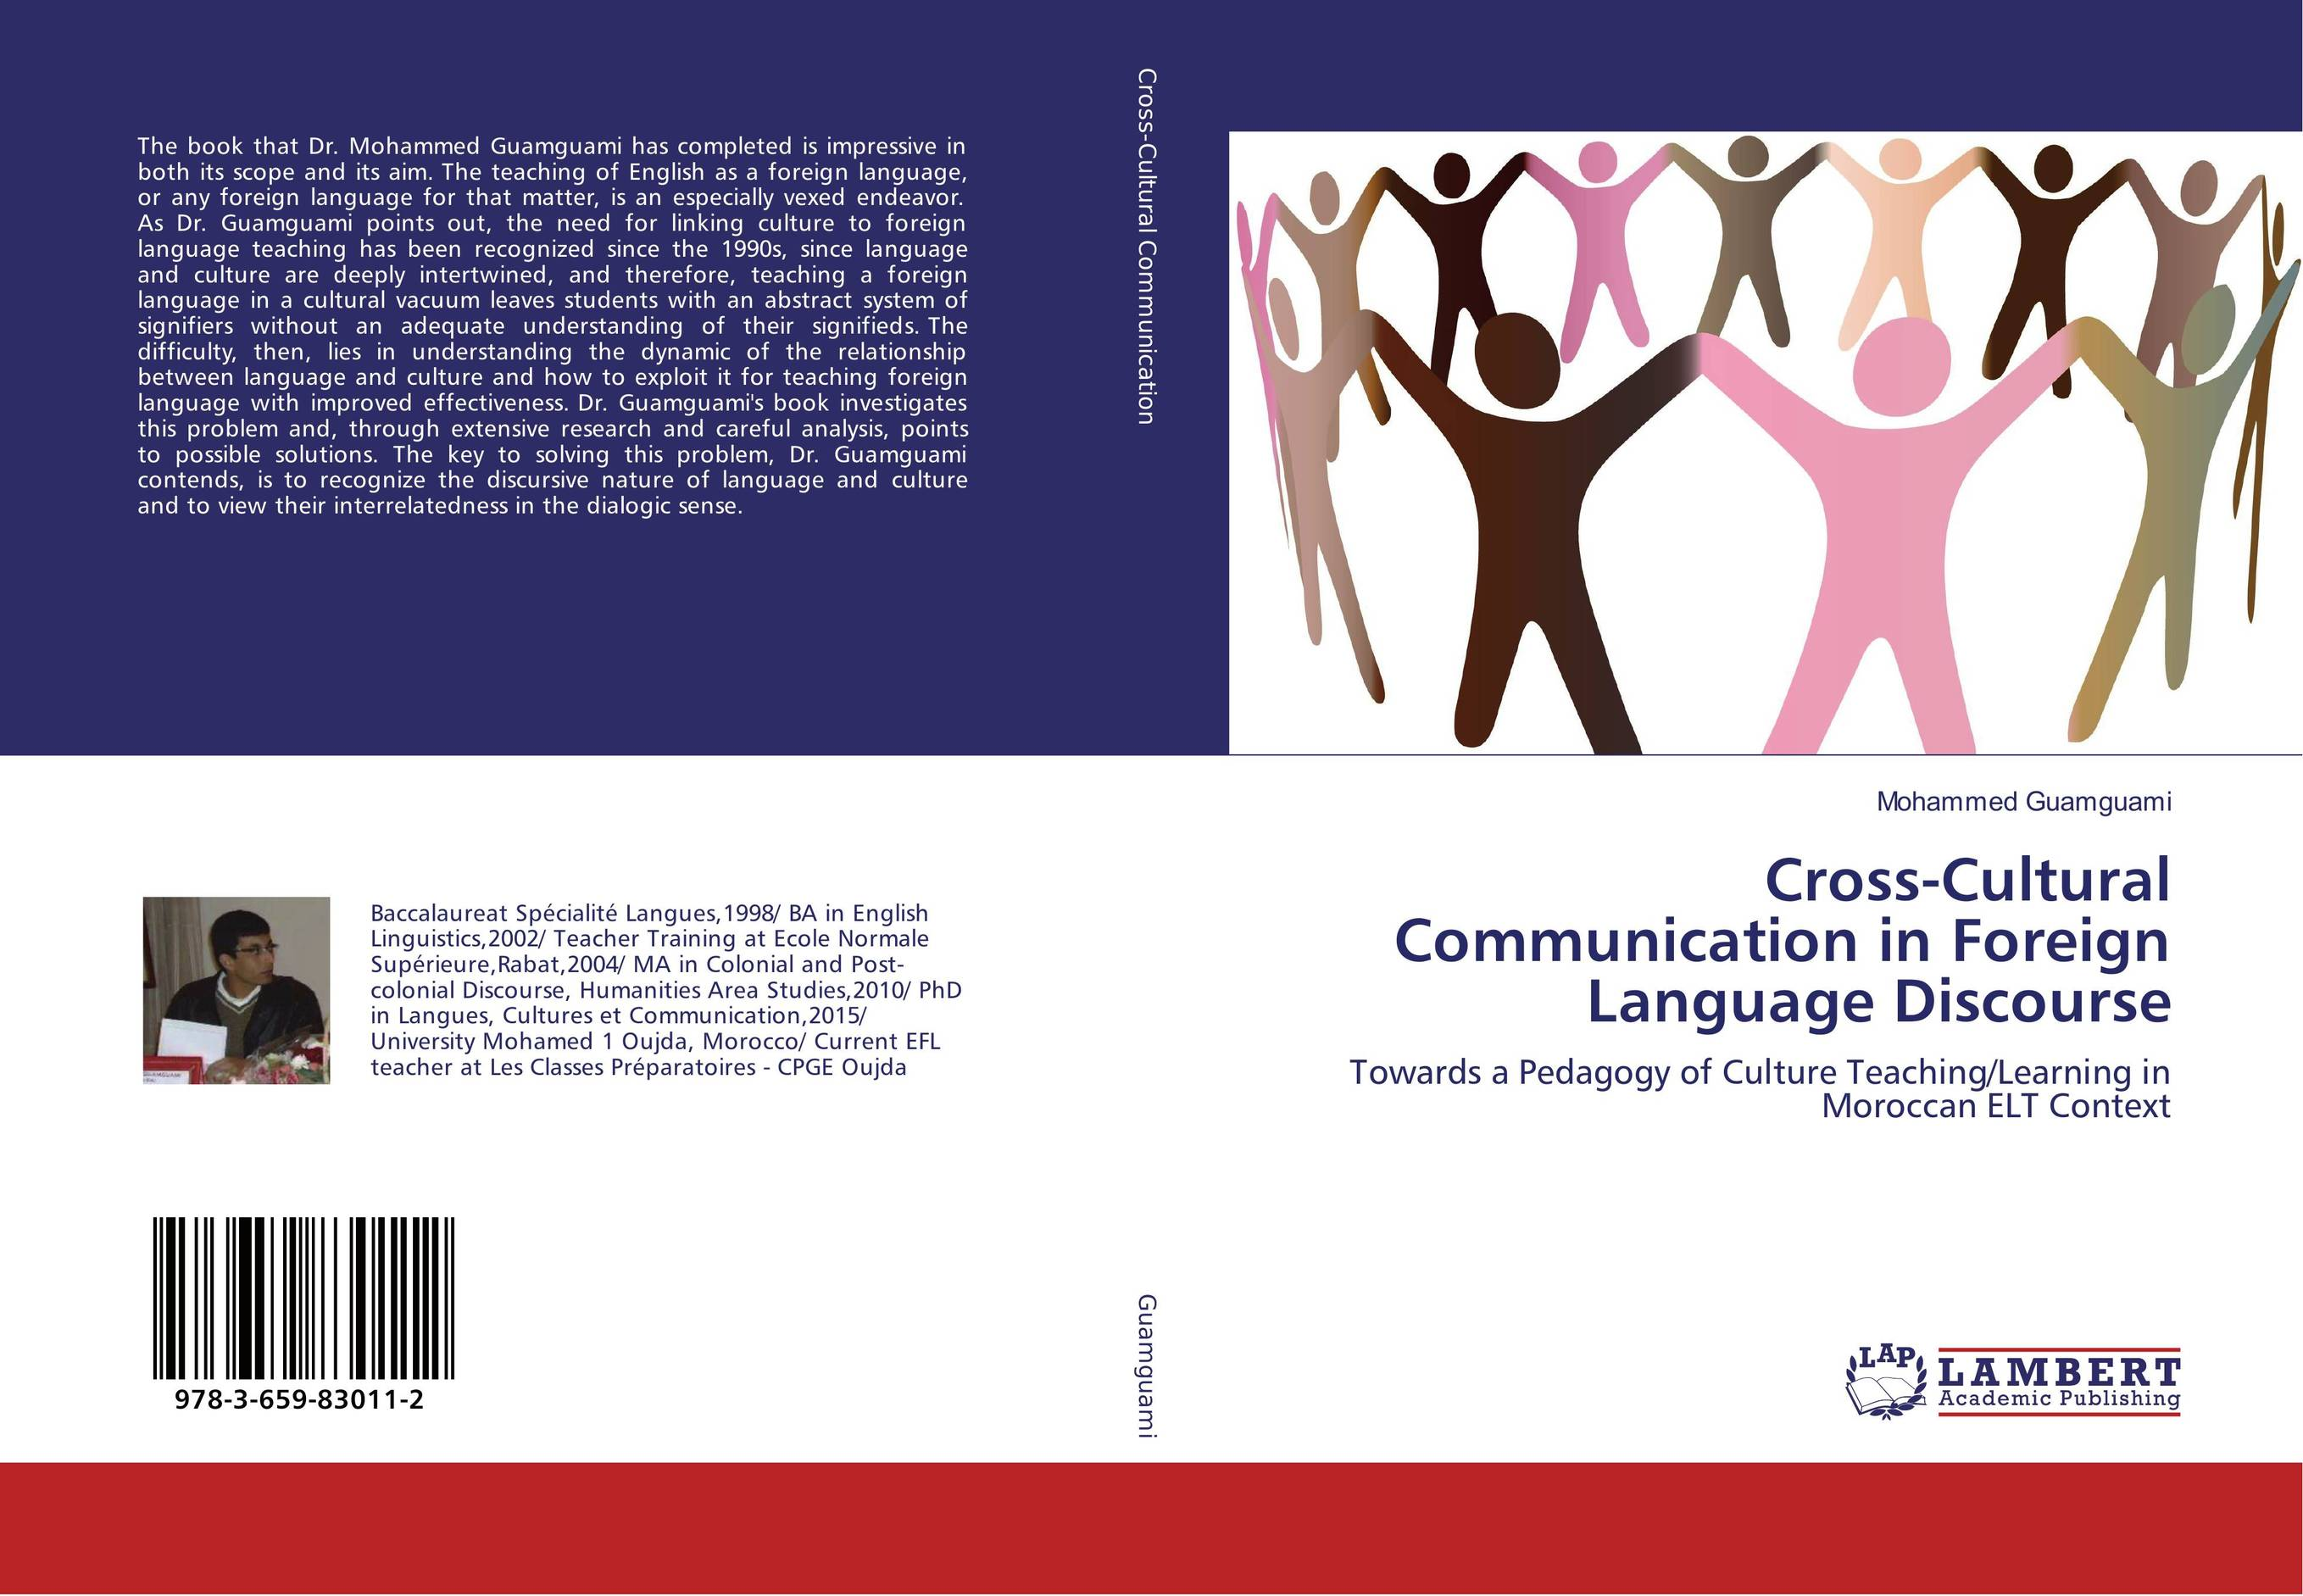 Cross-Cultural Communication in Foreign Language Discourse the internal load analysis in soccer